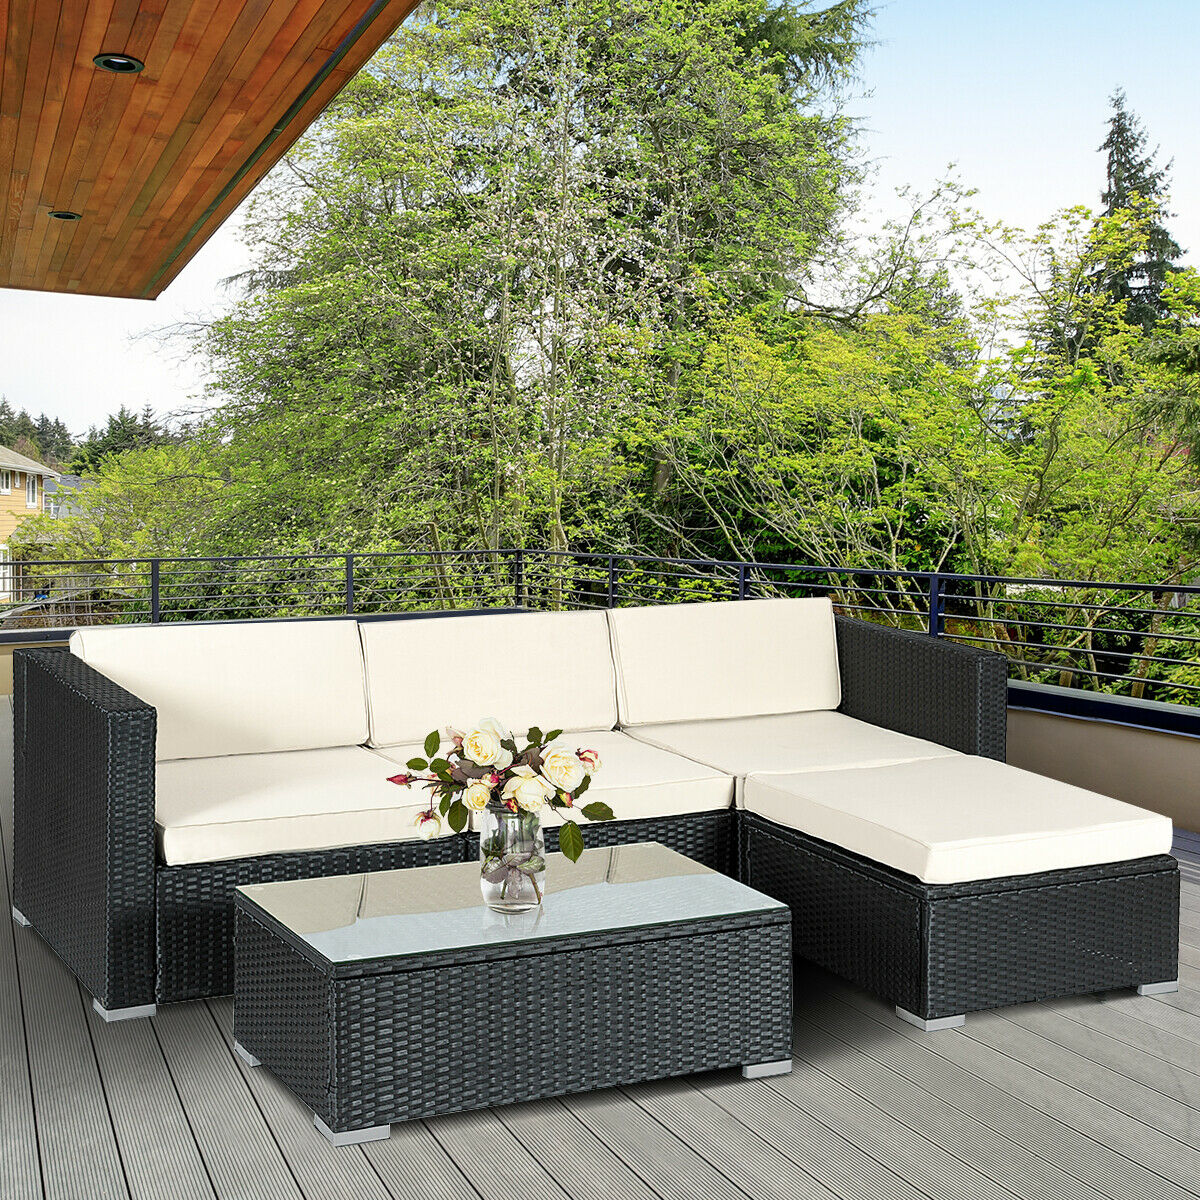 Costway 5 PCS Patio Furniture Set Rattan Wicker Table Shelf Garden